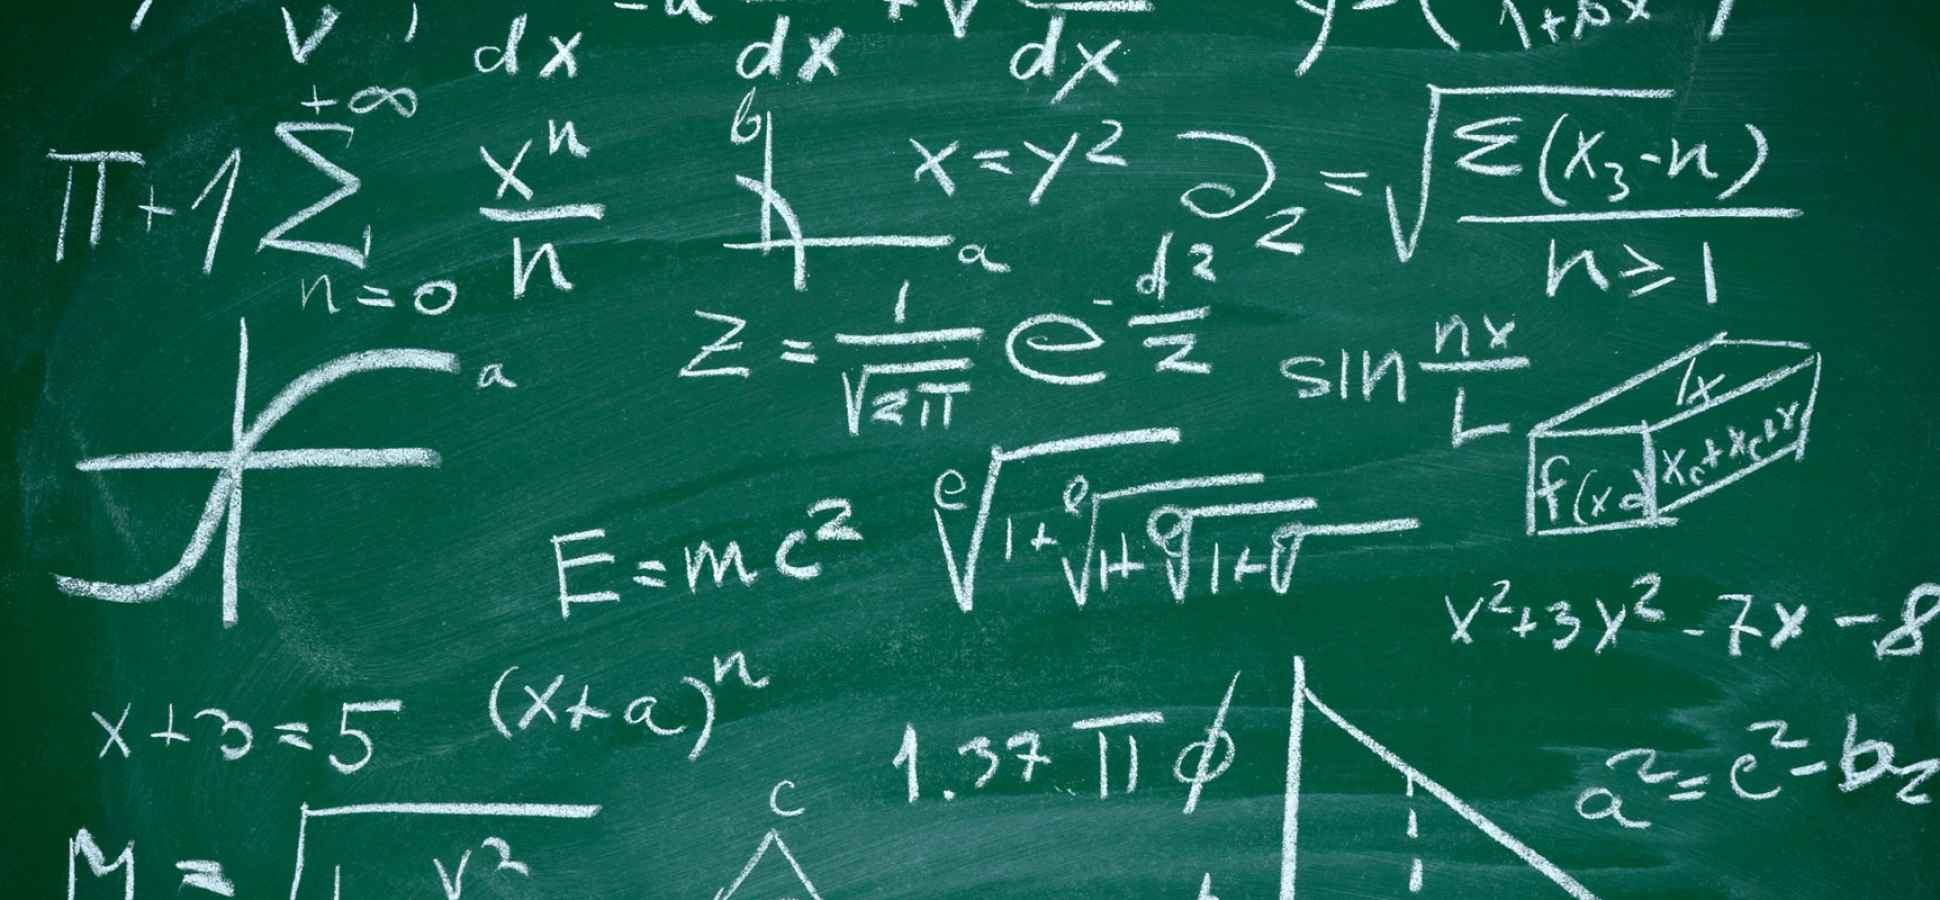 Want to Be a Great Leader? There's an Equation for That